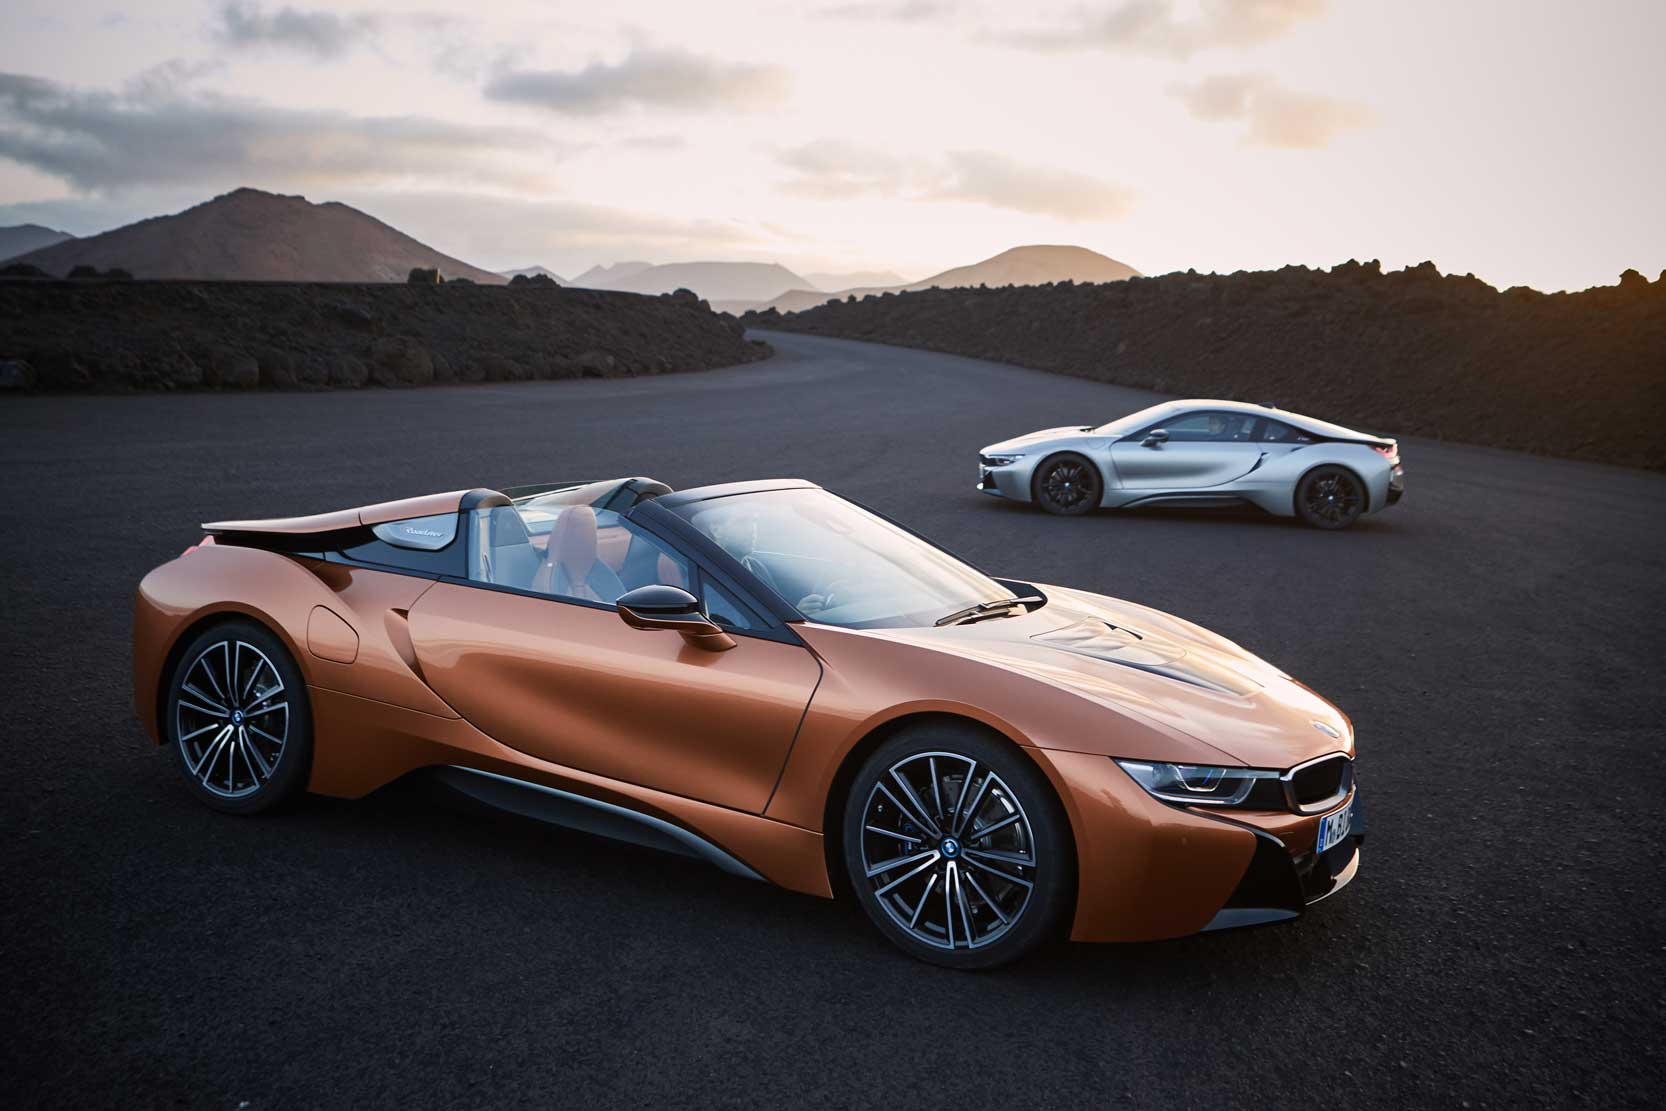 Exterieur_Bmw-i8-Roadster_0